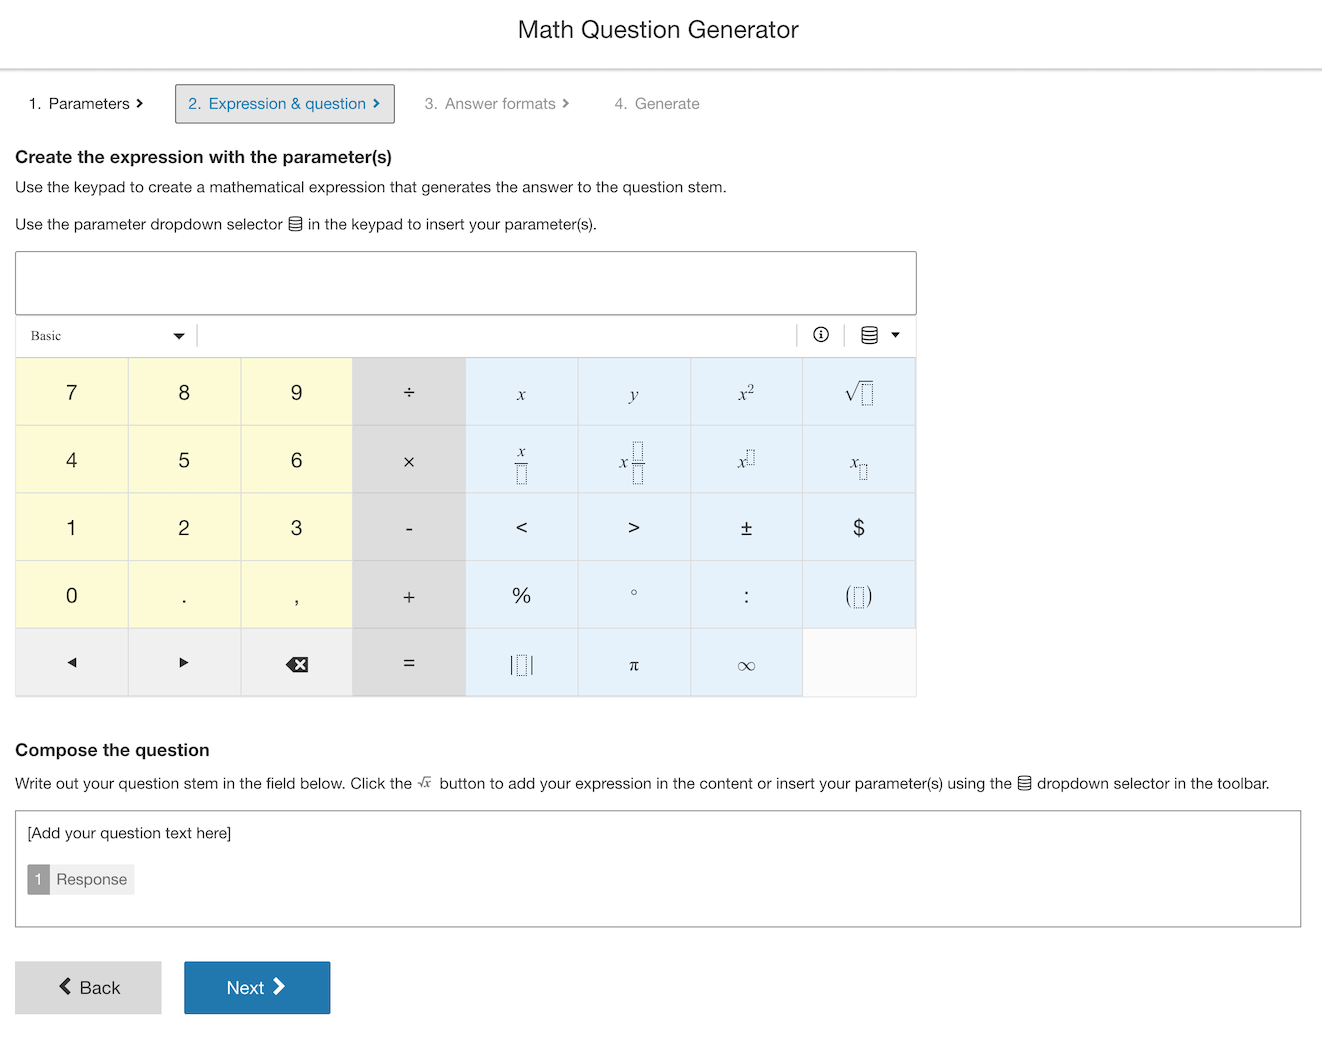 Creating your mathematical expression